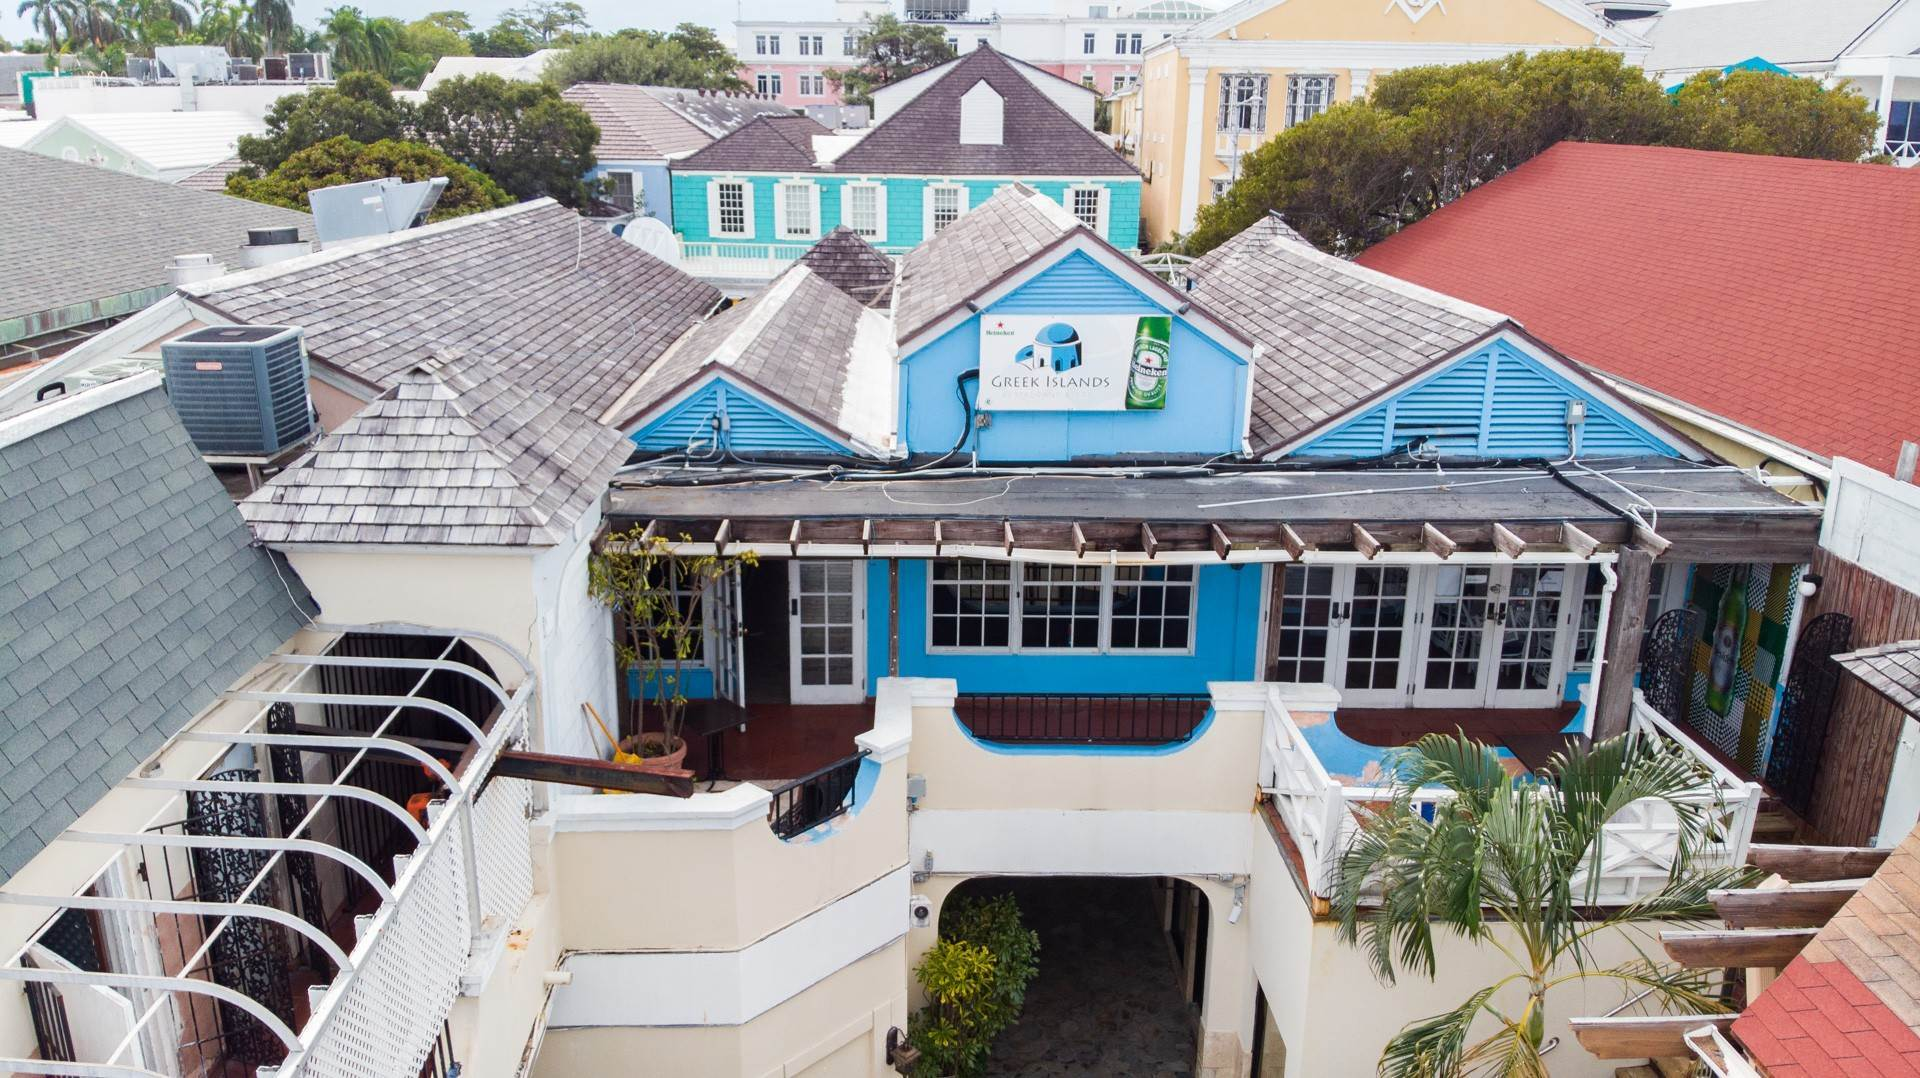 Commercial for Rent at Large Restaurant Space overlooking Bay St - MLS 43156 Bay Street, Nassau And Paradise Island, Bahamas